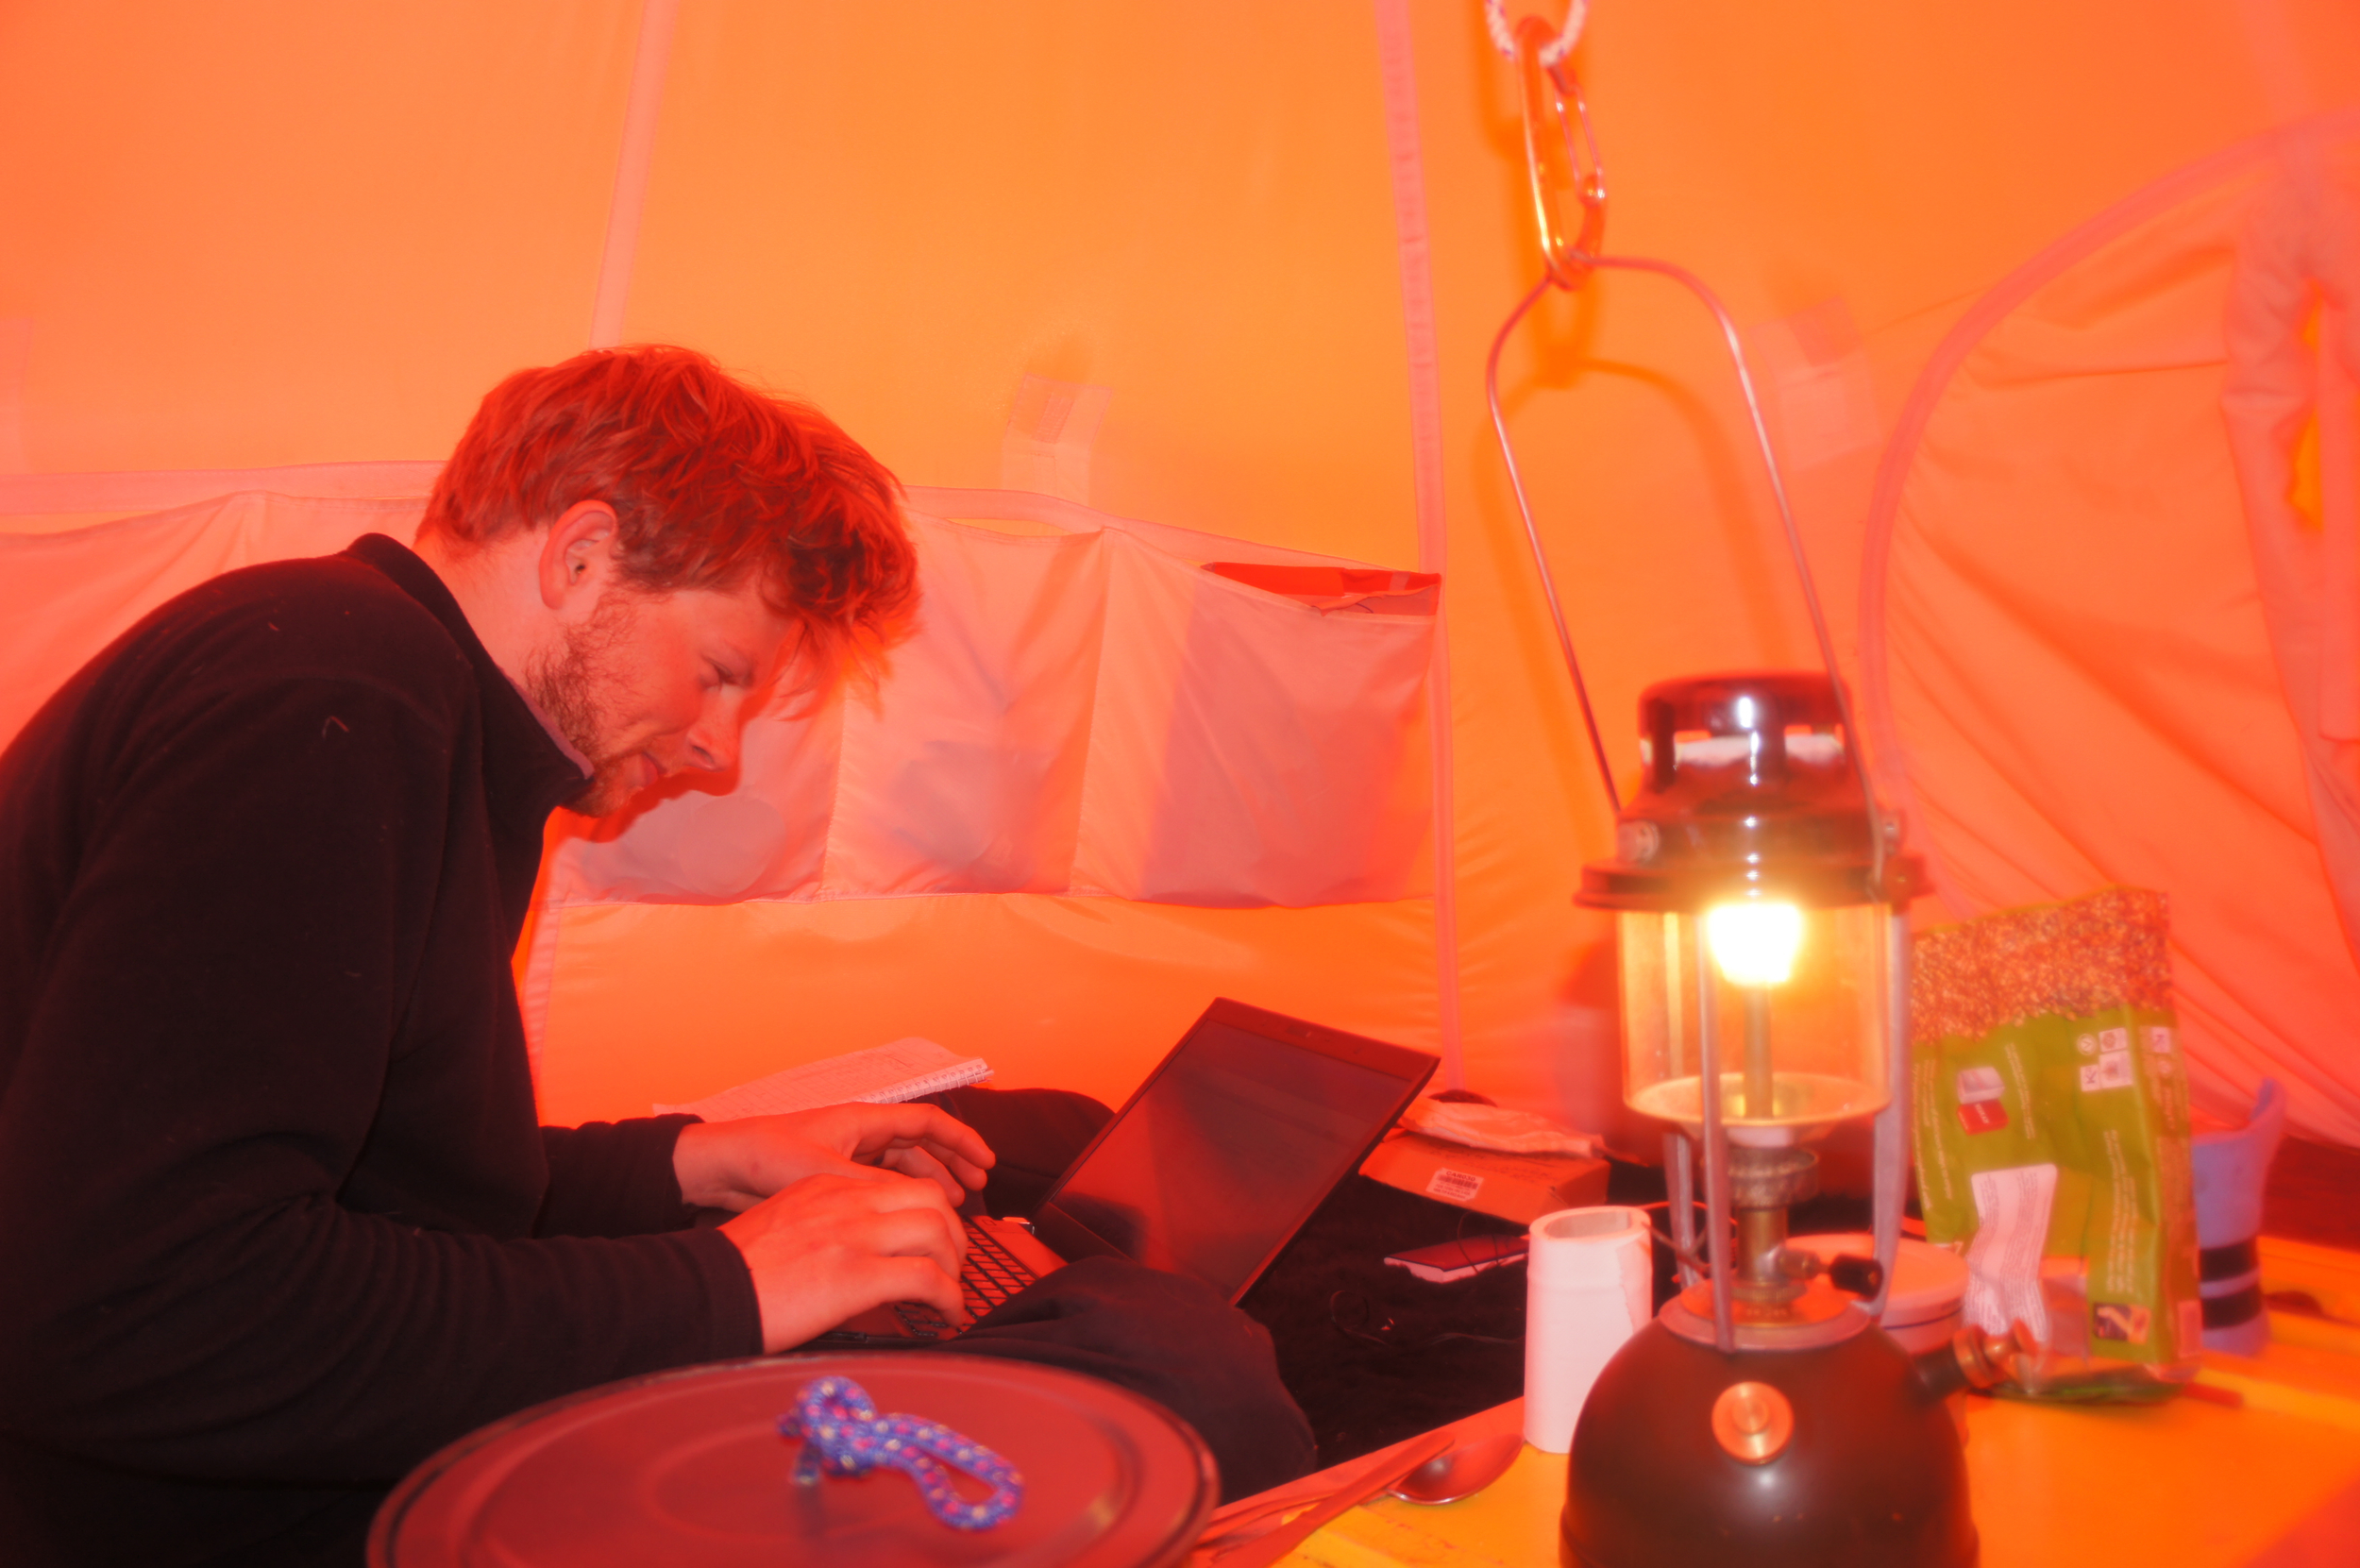 Dr. Kingslake hard at work in the tent